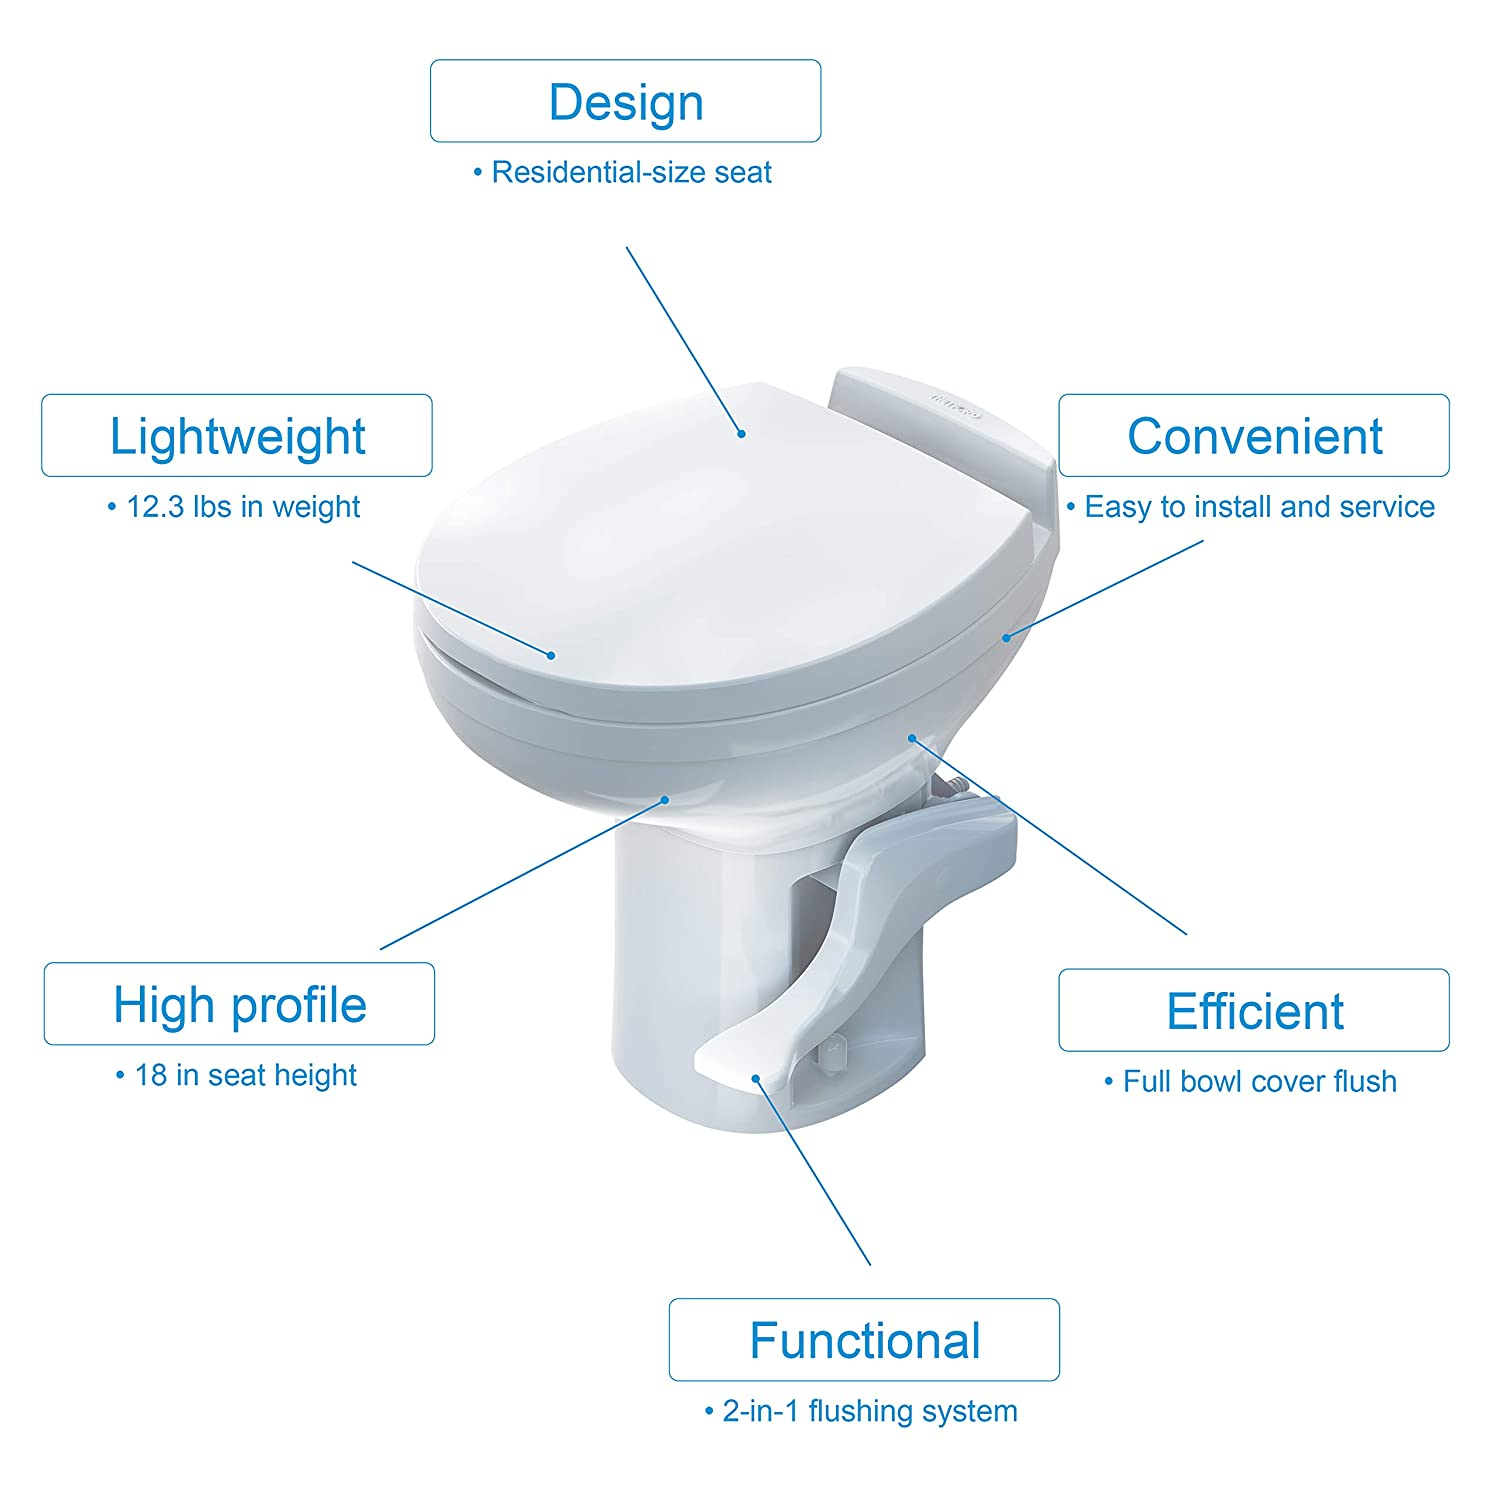 Prime Aqua Magic Residence Rv Toilet High Profile White Thetford 42169 Gmtry Best Dining Table And Chair Ideas Images Gmtryco